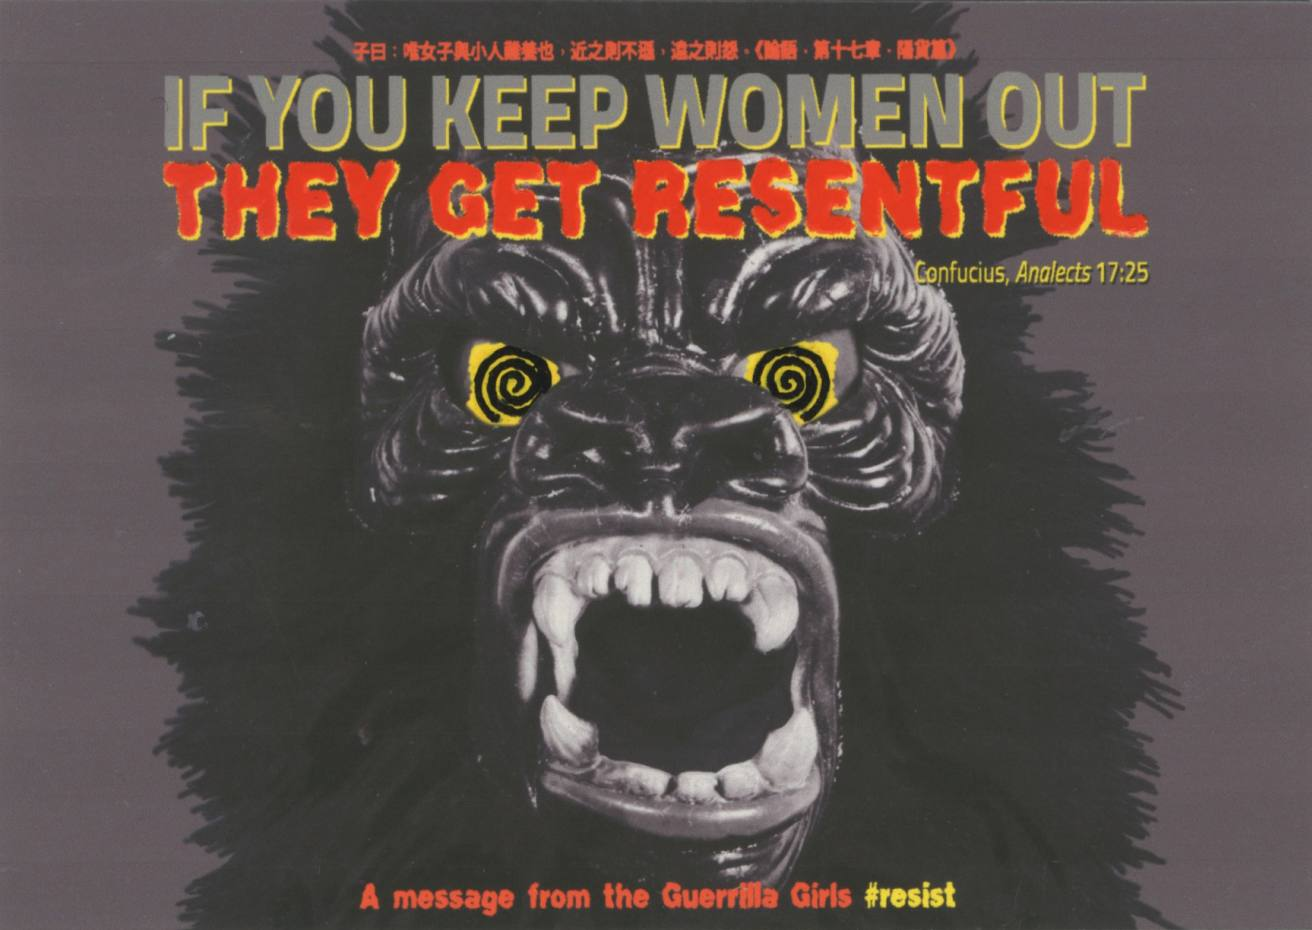 This is the first Art on a Postcard auction featuring only women artists, including the feminist art group Guerrilla Girls